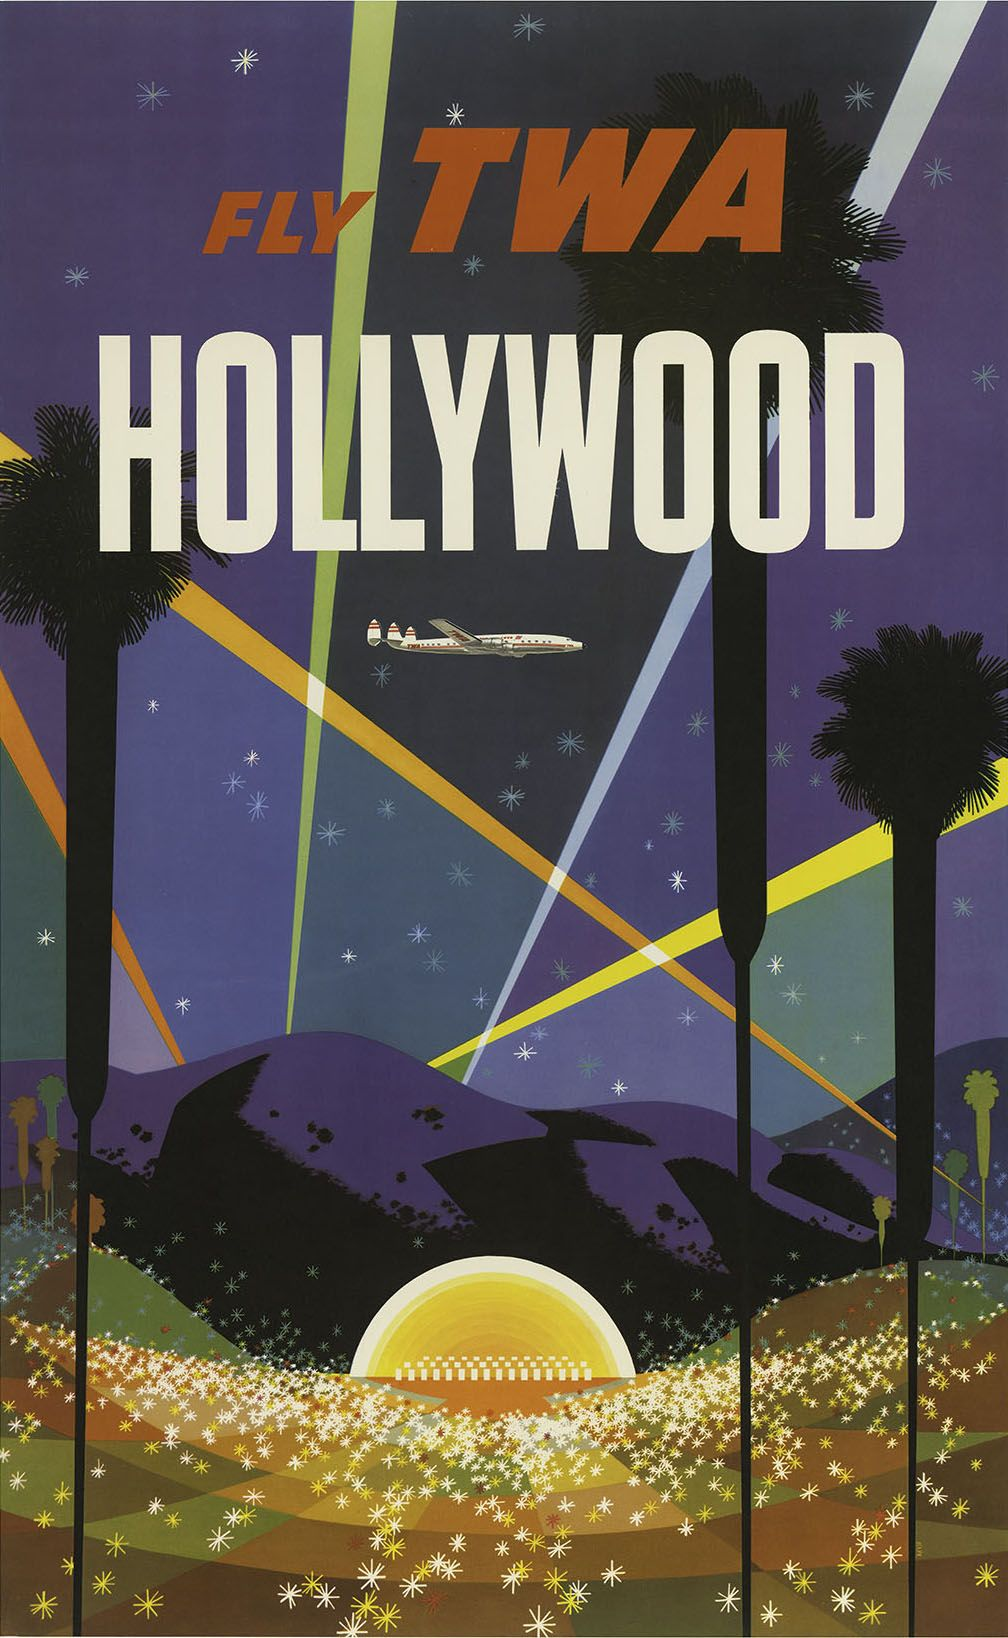 Poster design los angeles -  Fly Twa Hollywood Travel Poster By David Klein 1958 Http